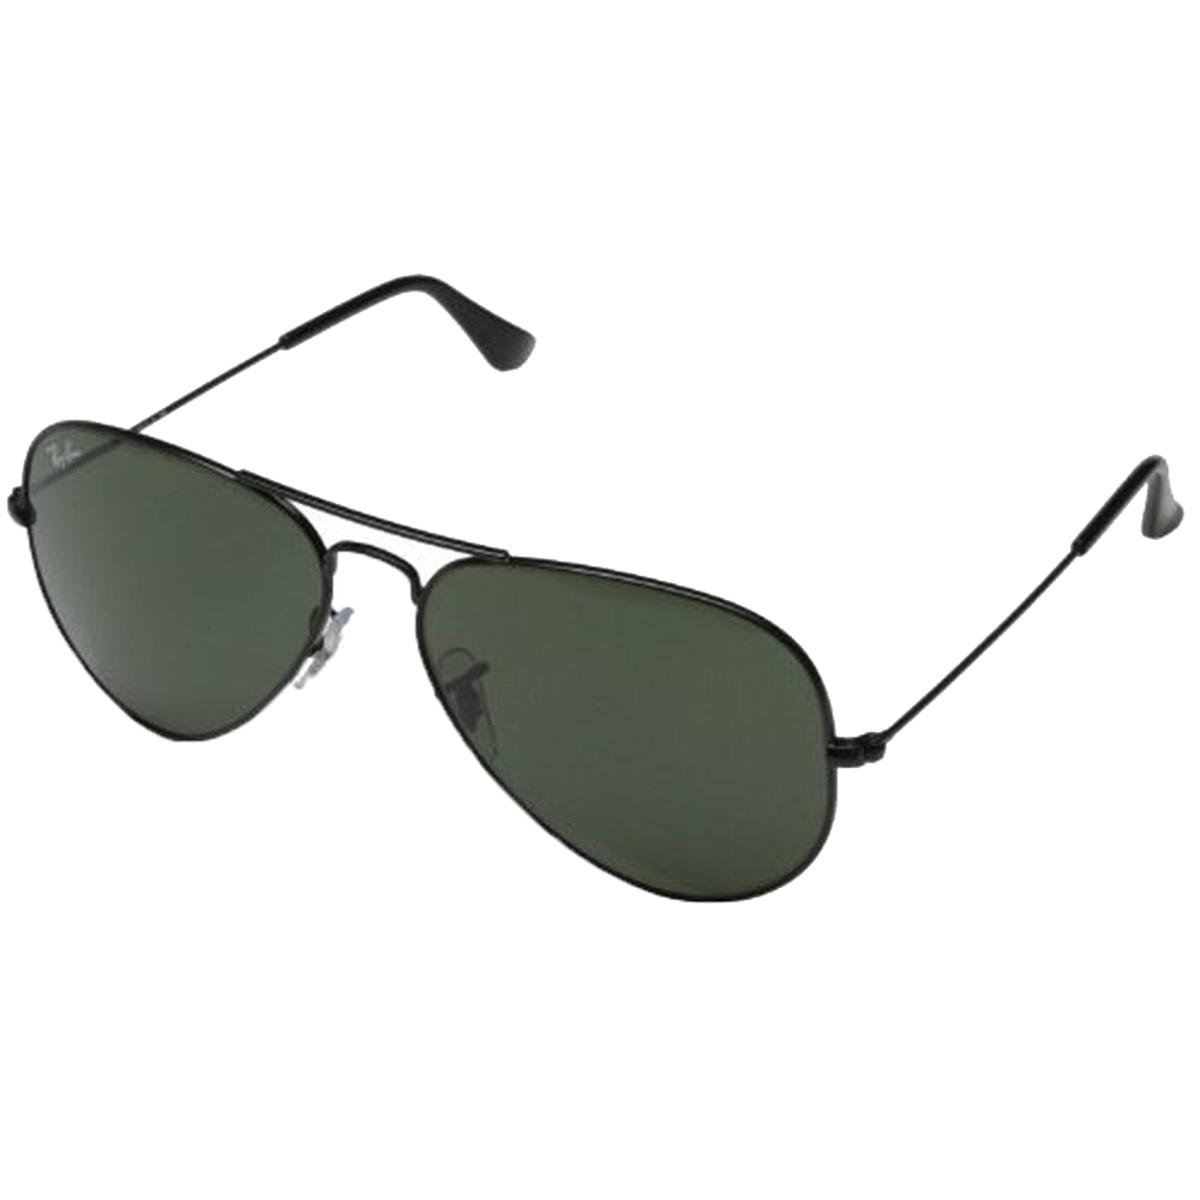 34d130b12c Details about Ray-Ban Mens Classic Gray Polarized Gradiant Aviator  Sunglasses O S BHFO 4488